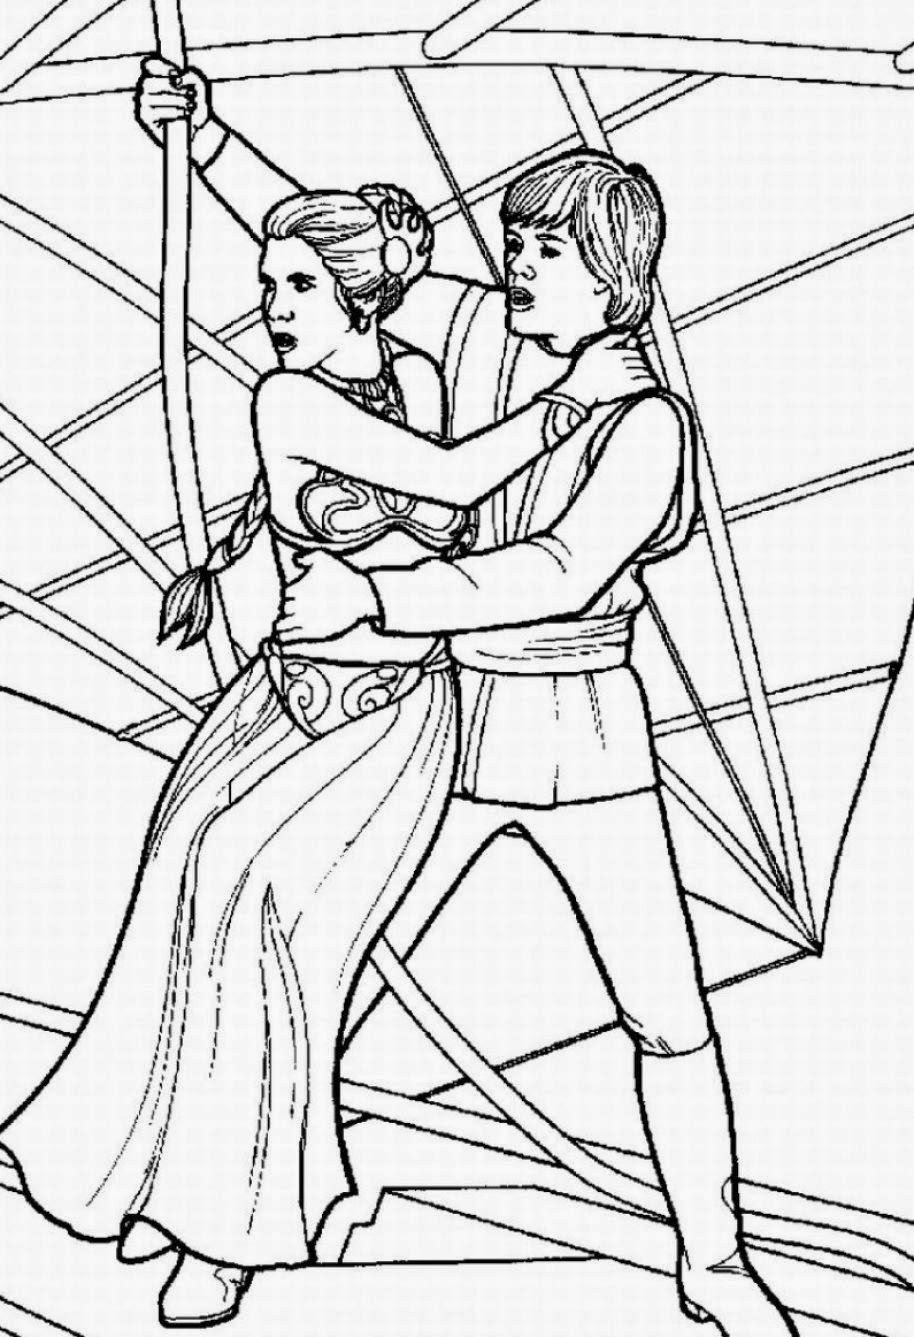 star wars coloring pages to print free star wars printable coloring pages bb 8 c2 b5 coloring star to wars pages print